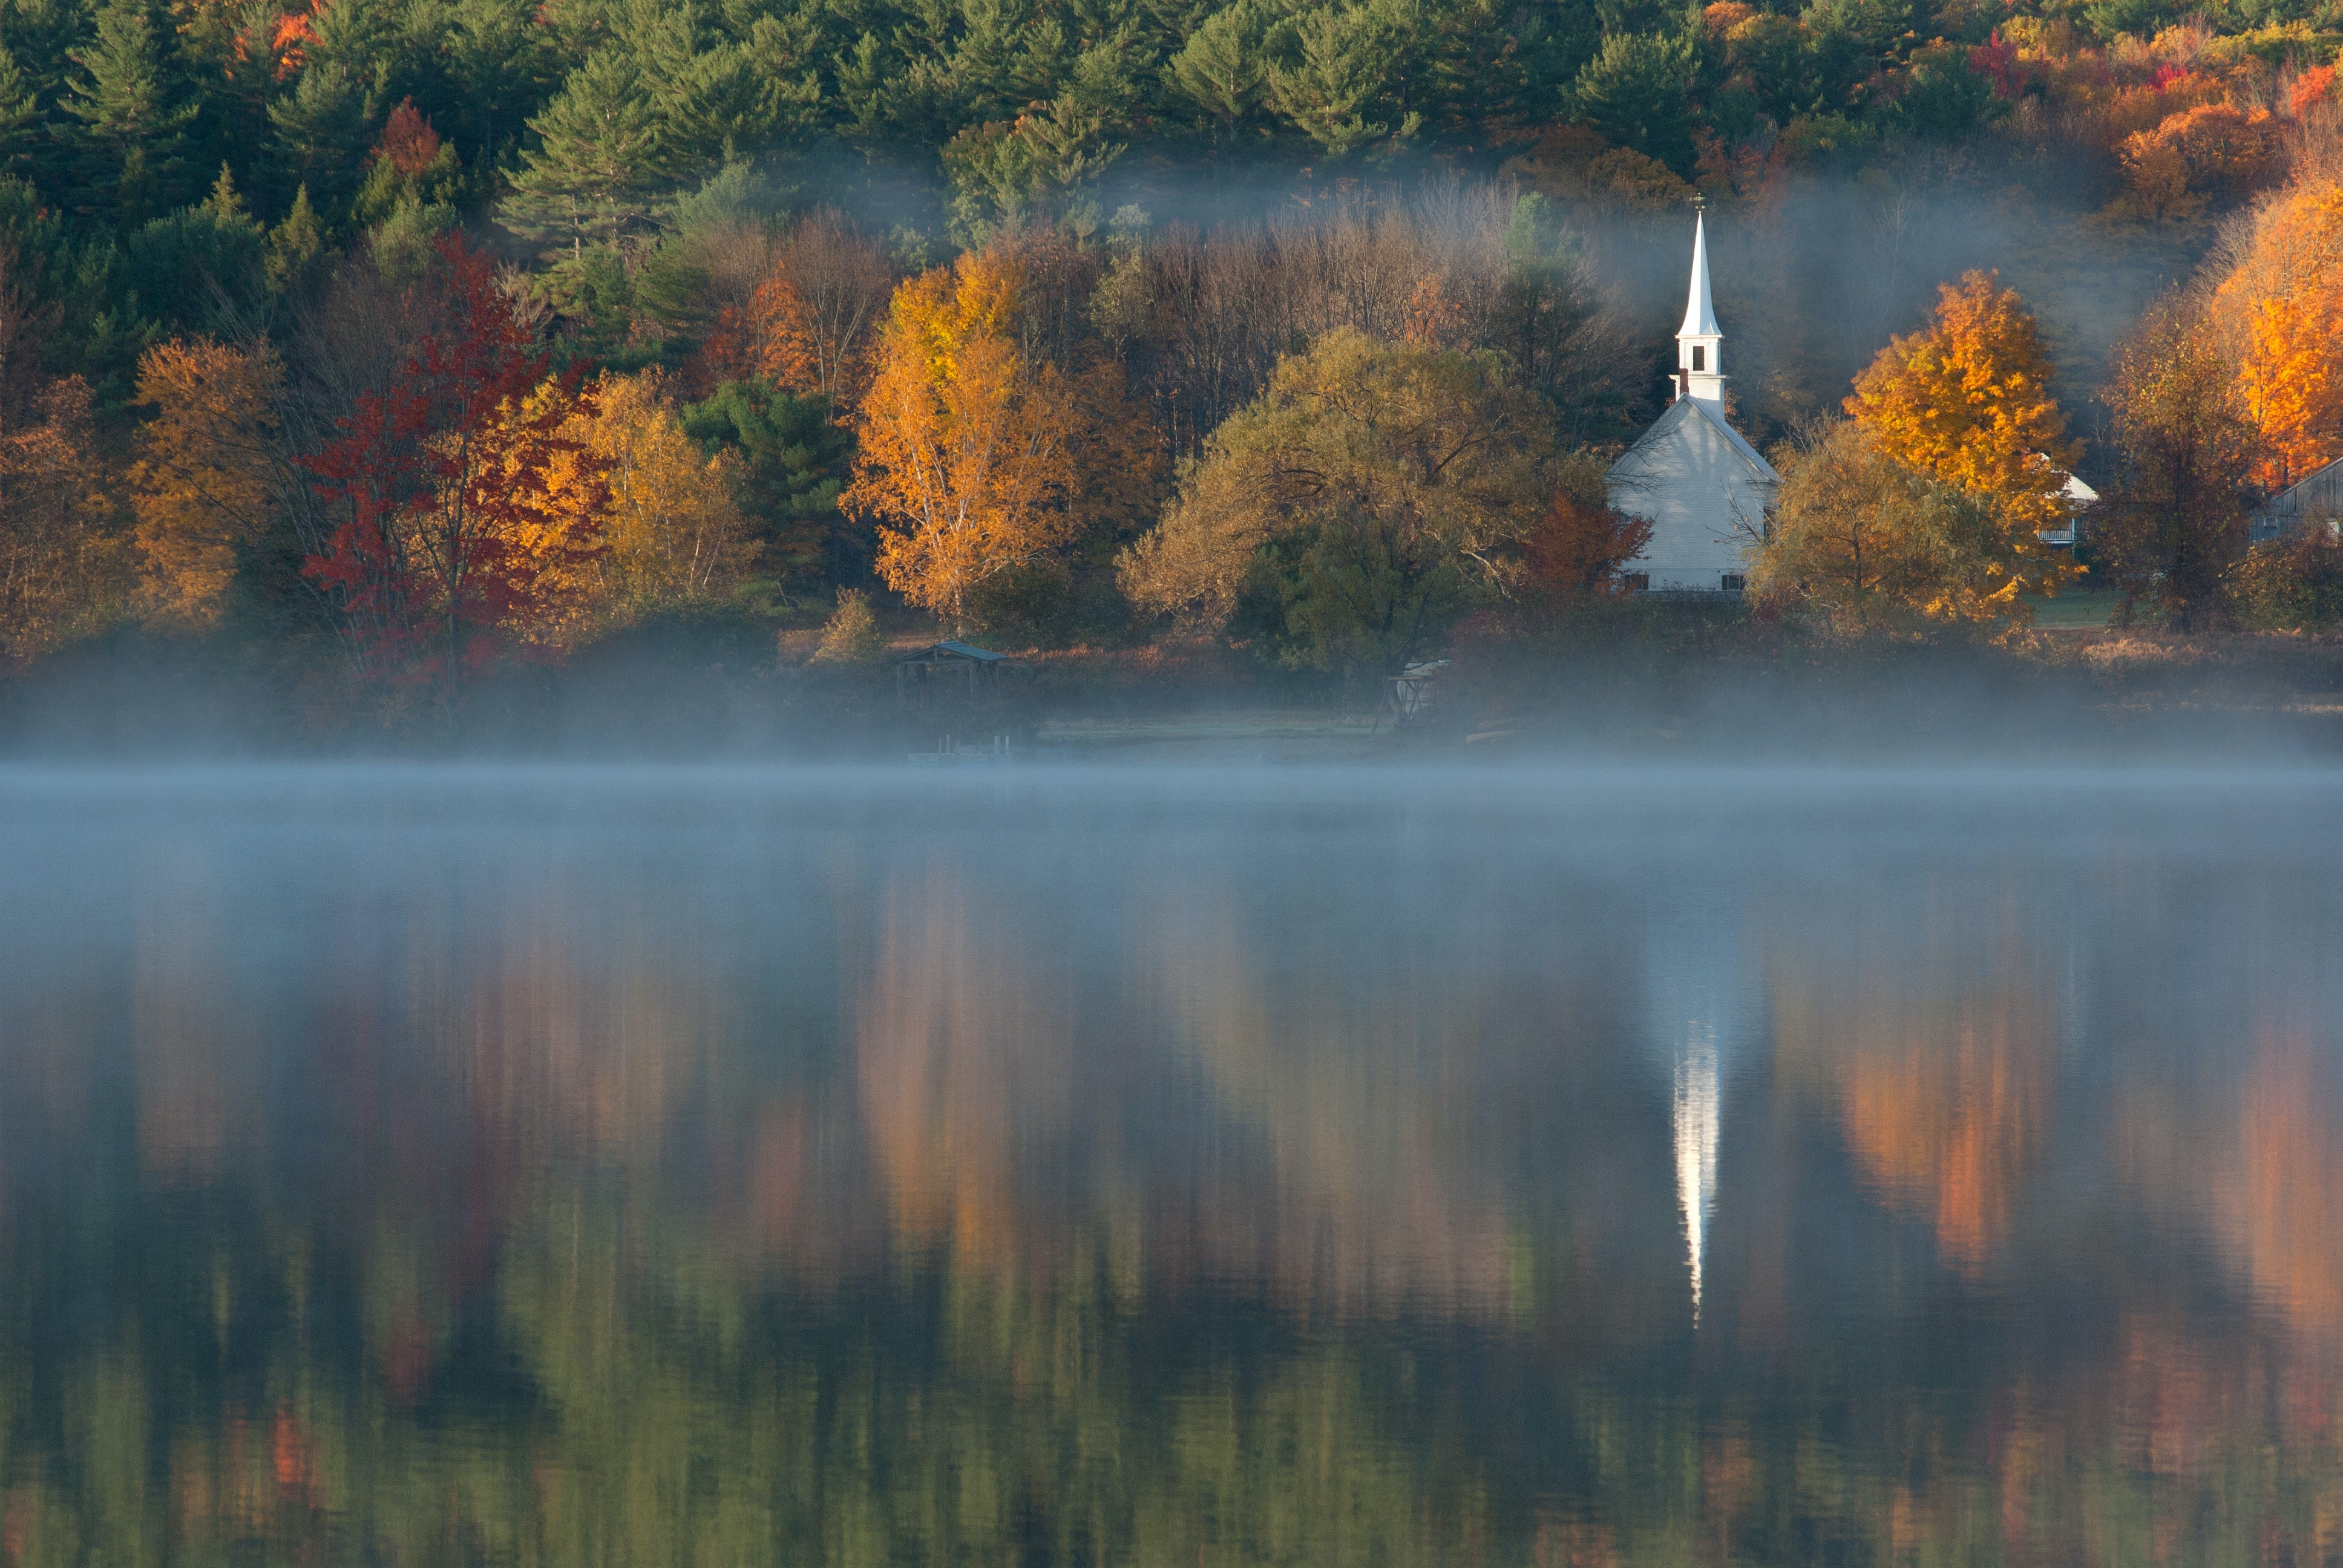 A scenic view of a small church on the shore of a hazy lake in Eaton